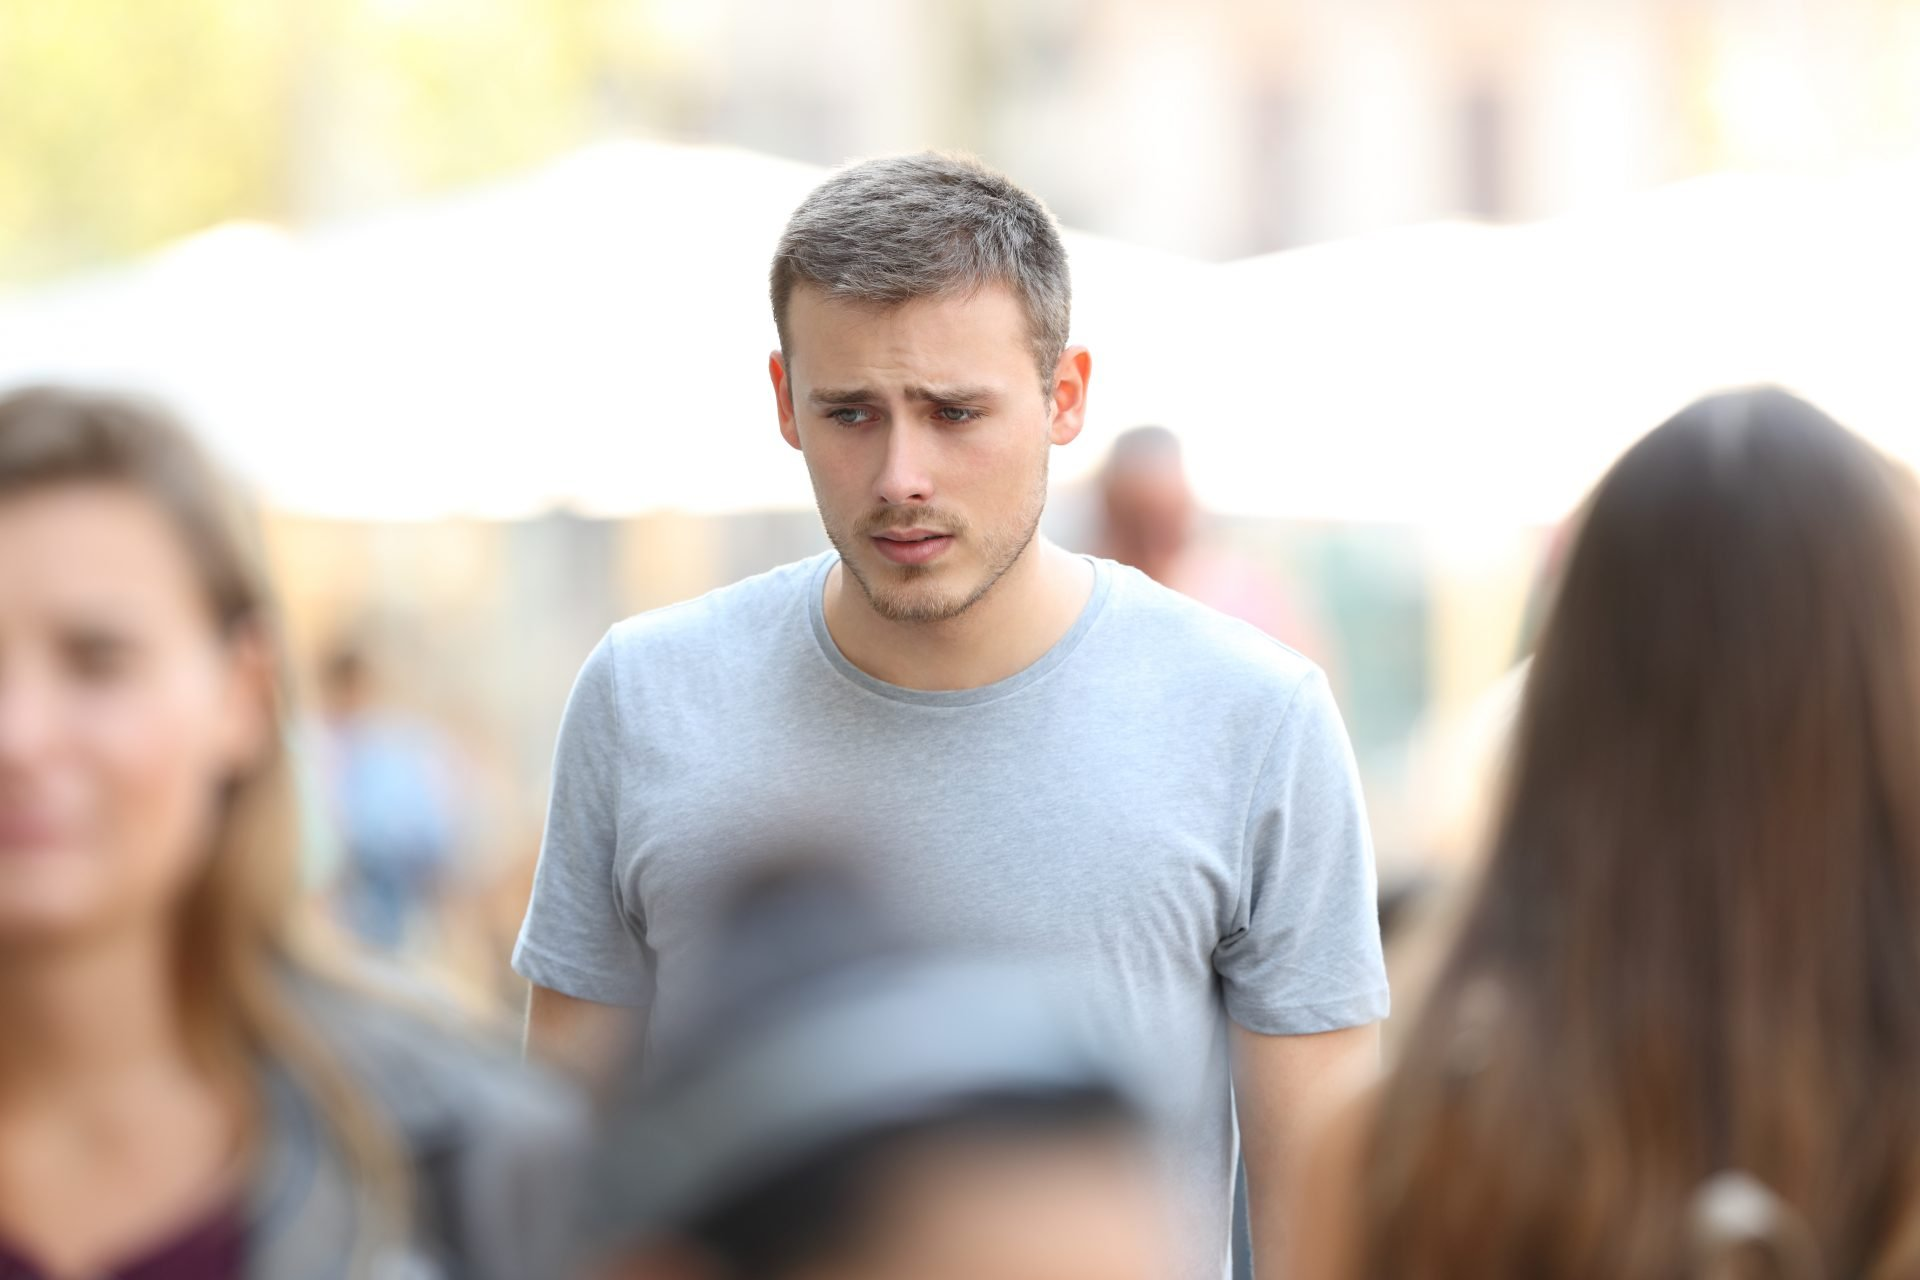 Worried young man amid crowd